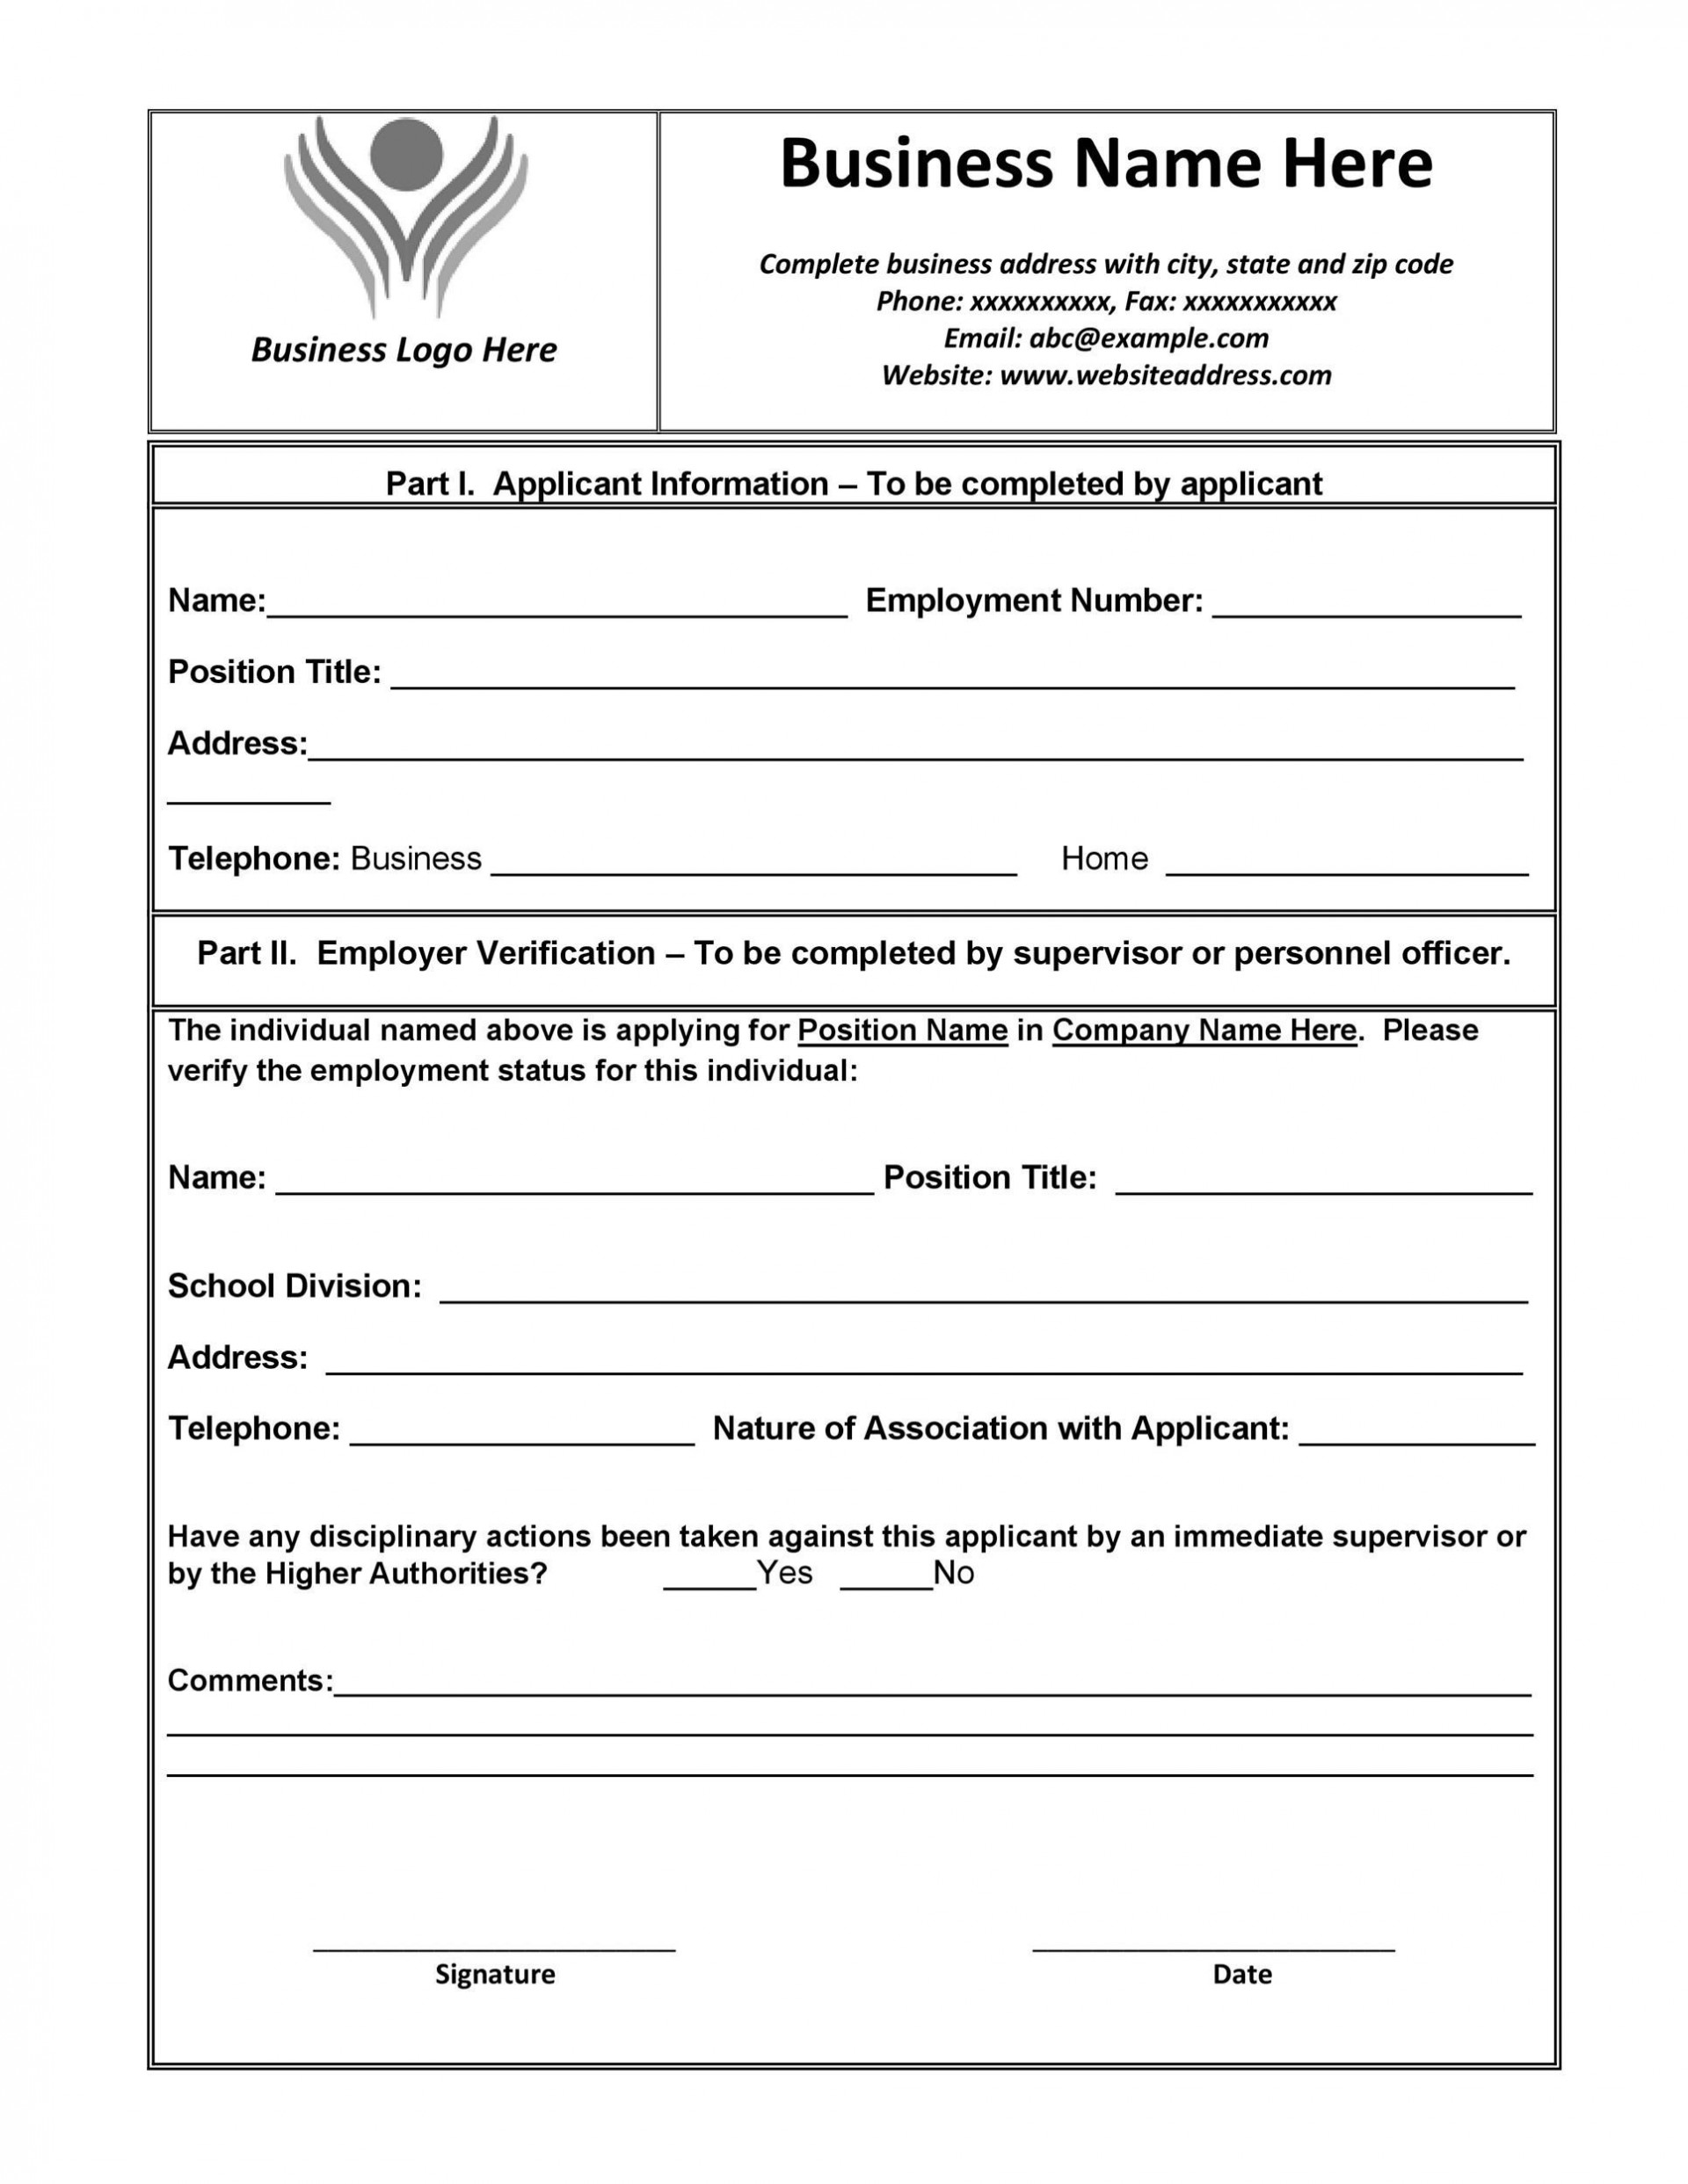 005 Frightening Employment Verification Form Template Image  Templates Previou Past Printable1920